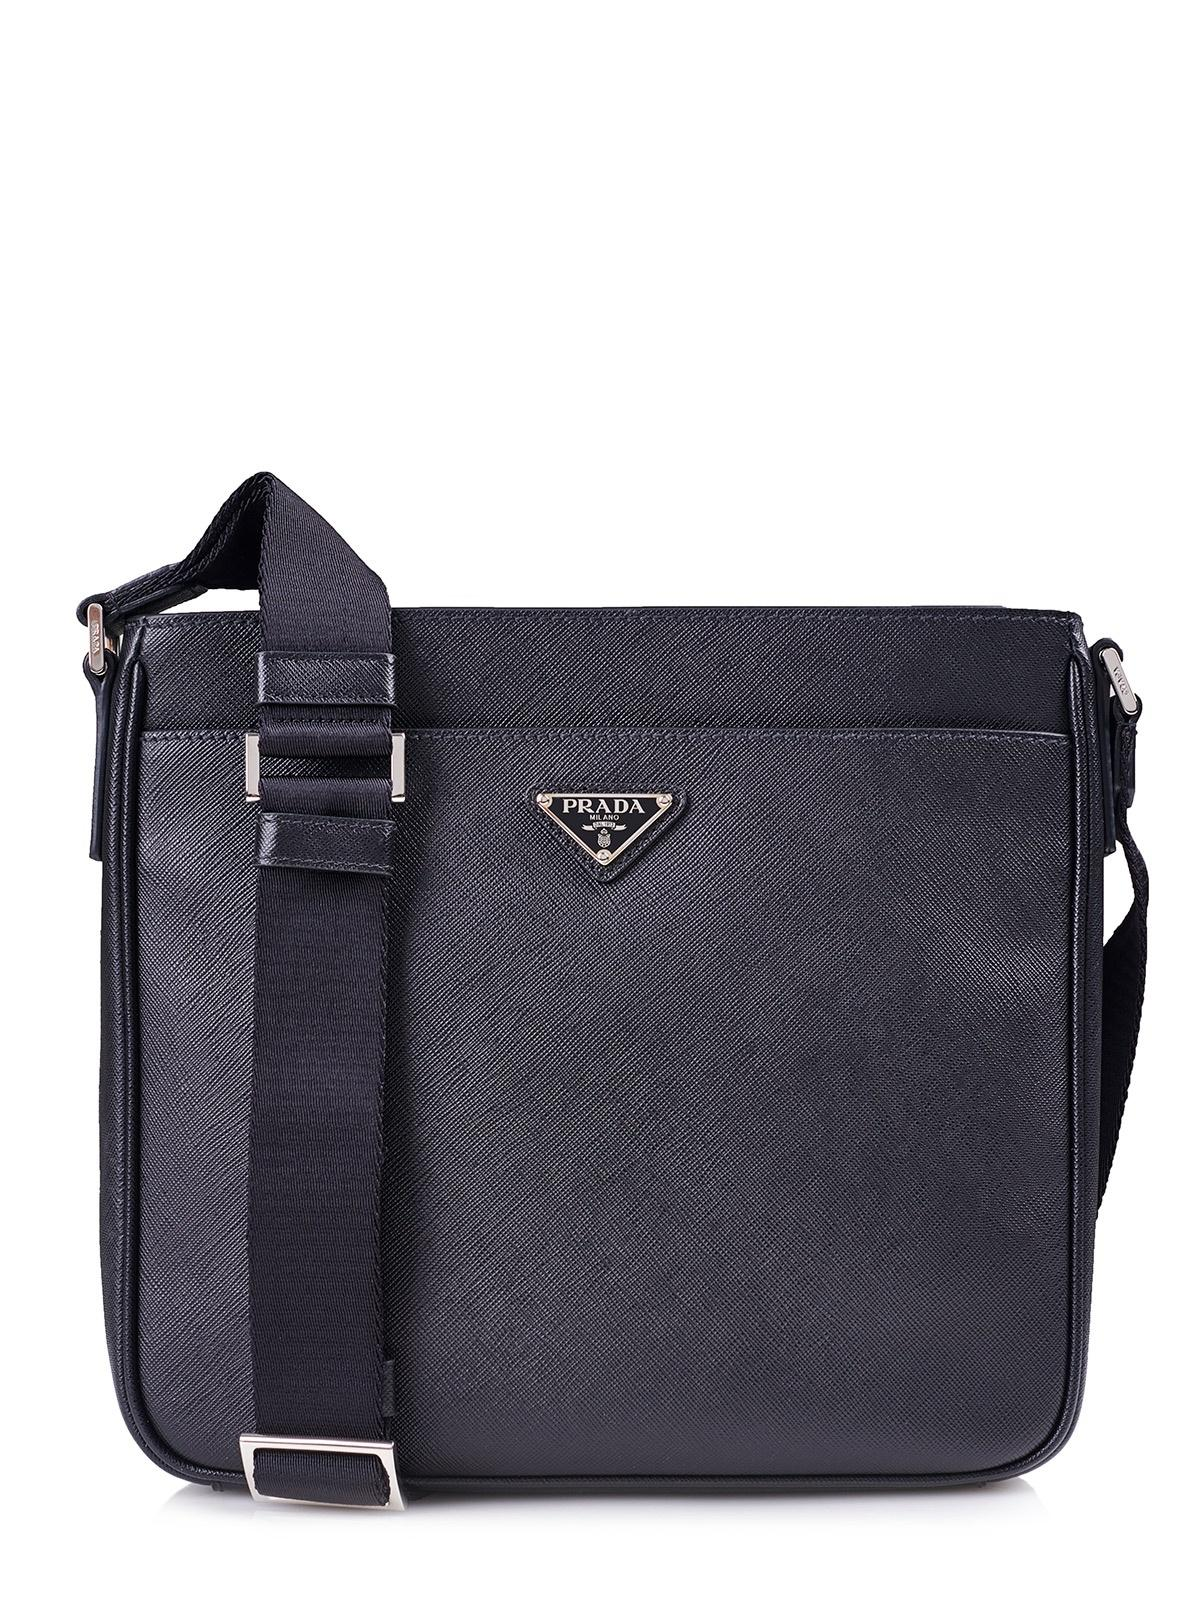 Prada Messenger Bags - Up to 70% off at Tradesy